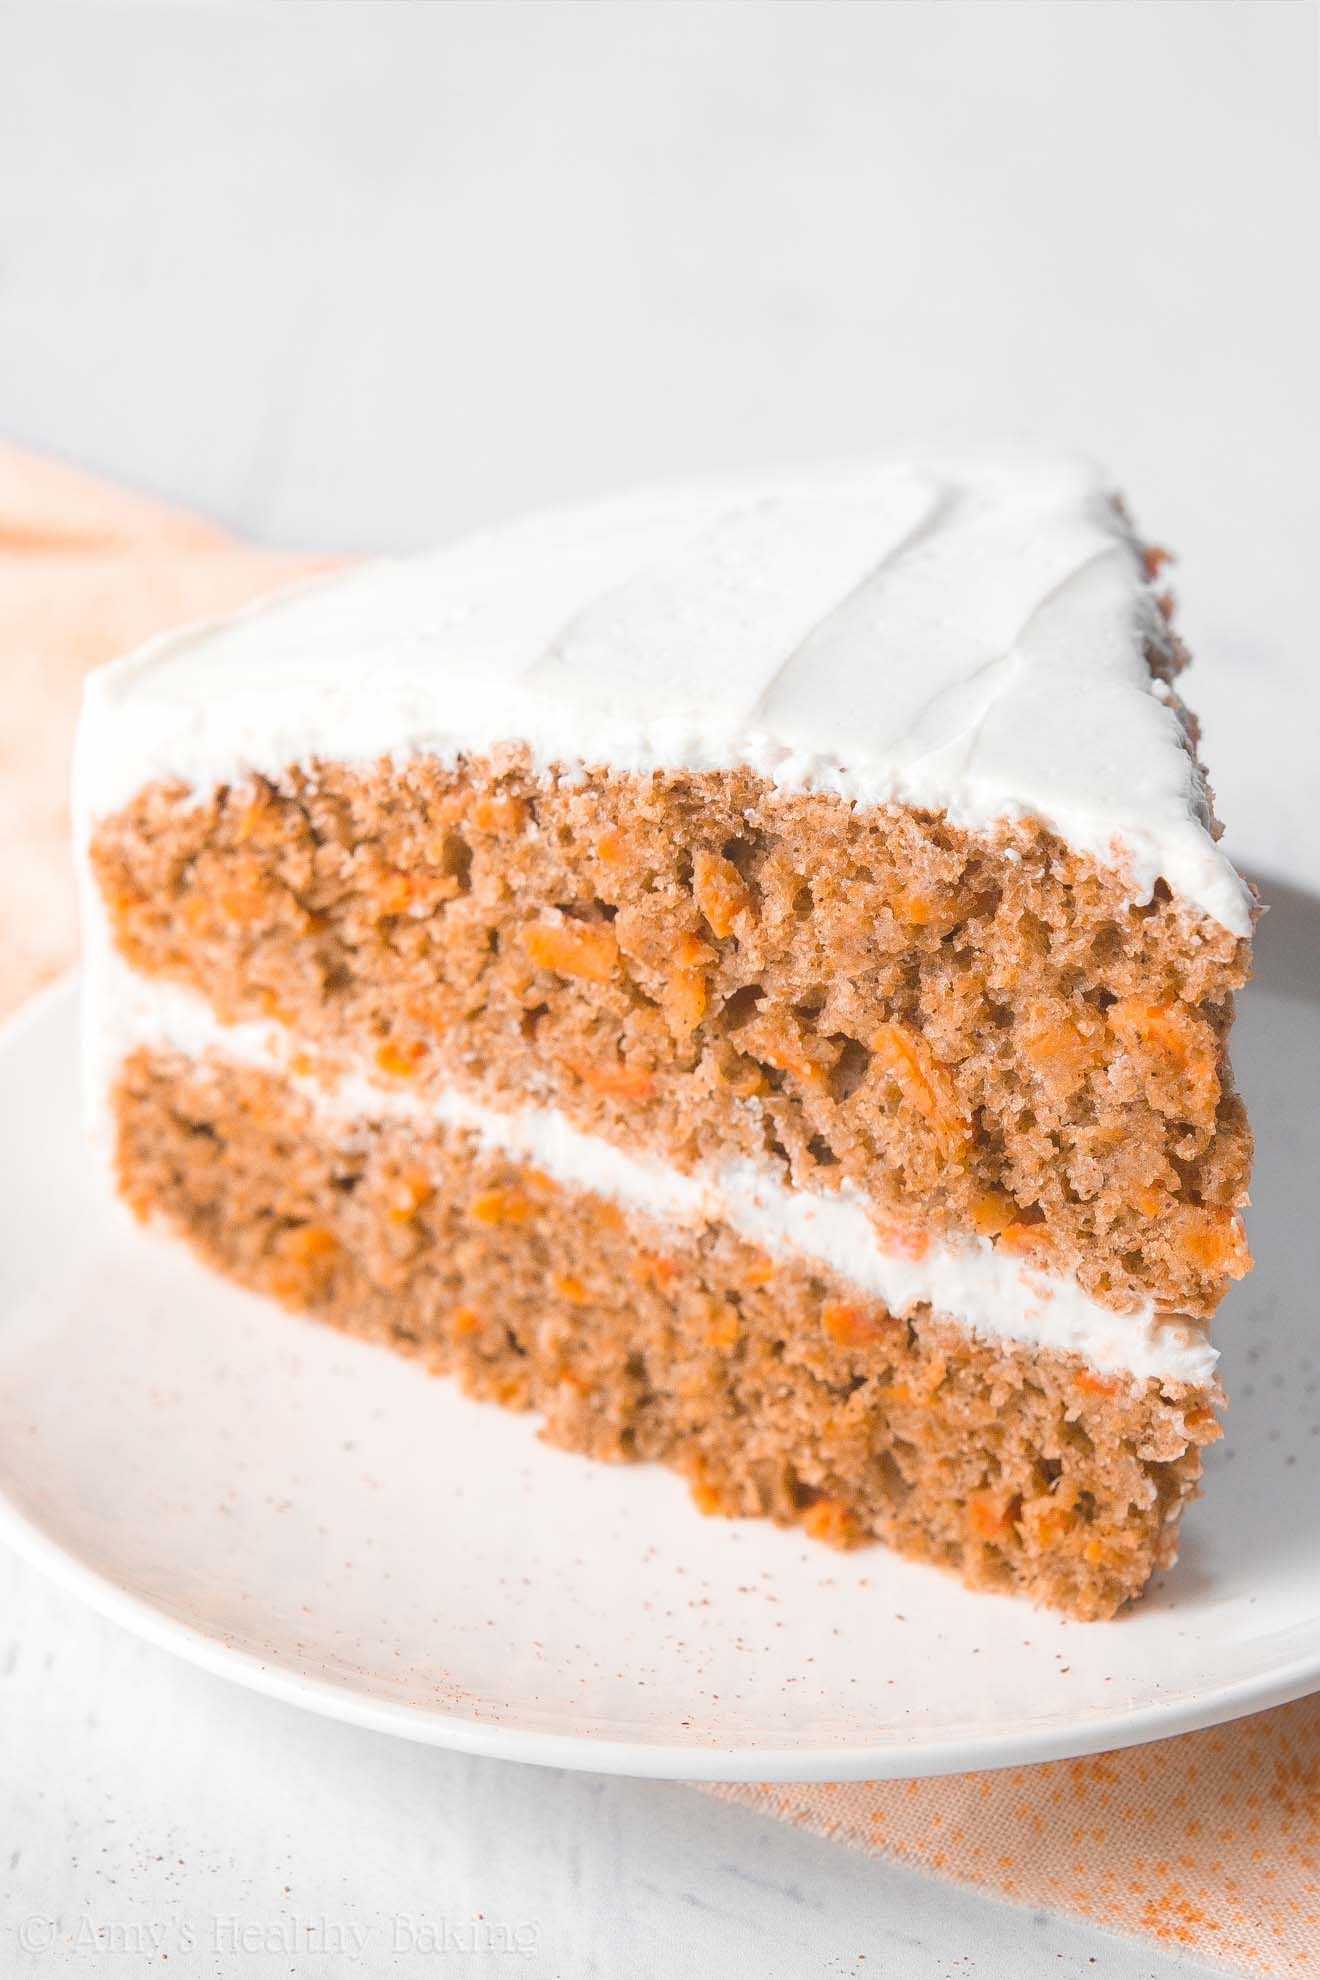 Healthy Carrot Cake Recipe With Applesauce  The Ultimate Healthy Carrot Cake With a Step by Step